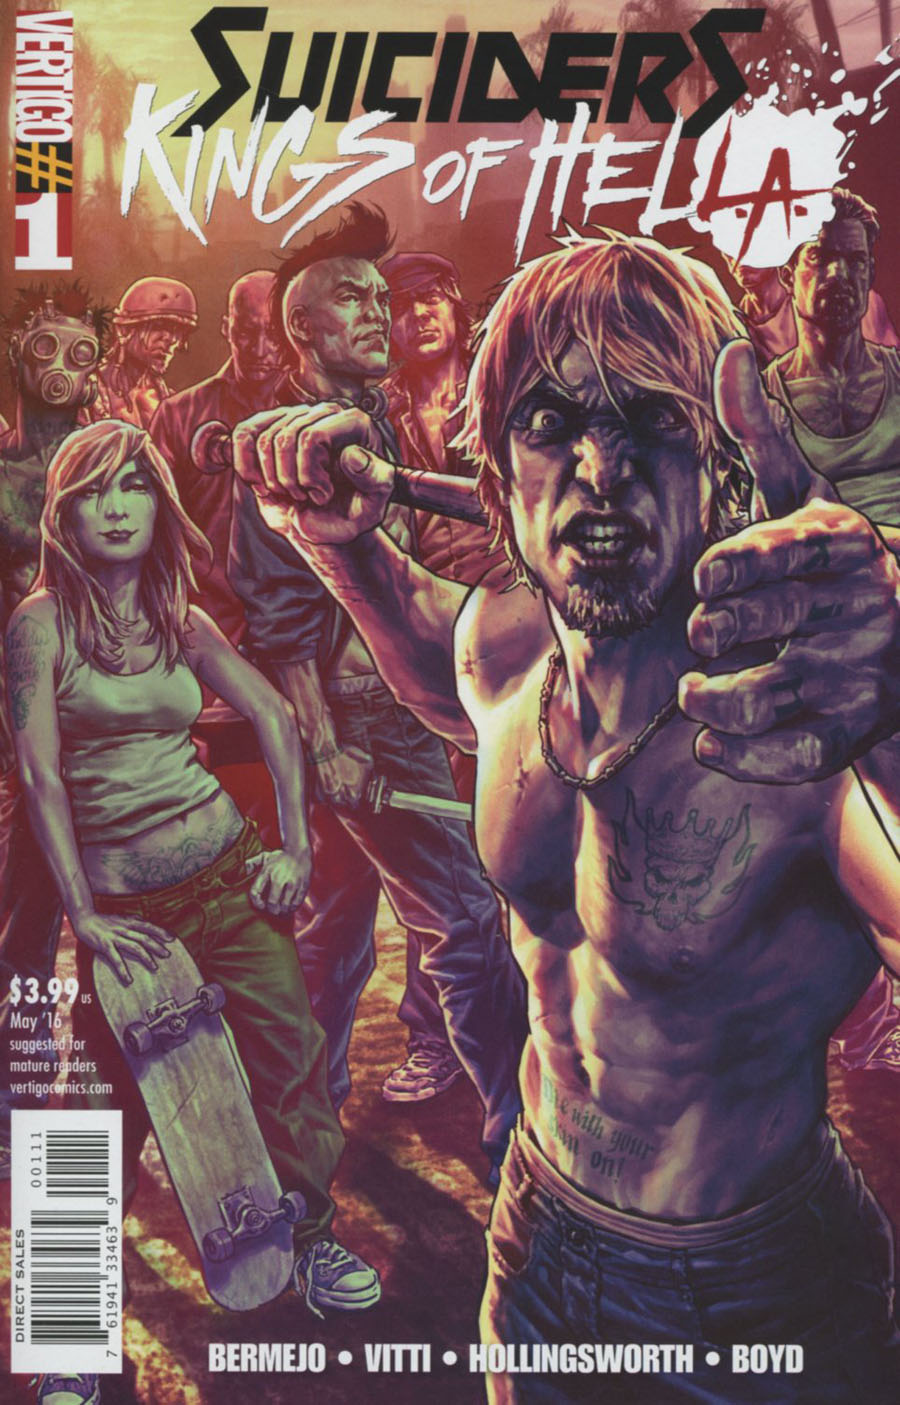 Suiciders Kings Of HelL.A. #1 Cover A Regular Lee Bermejo Cover